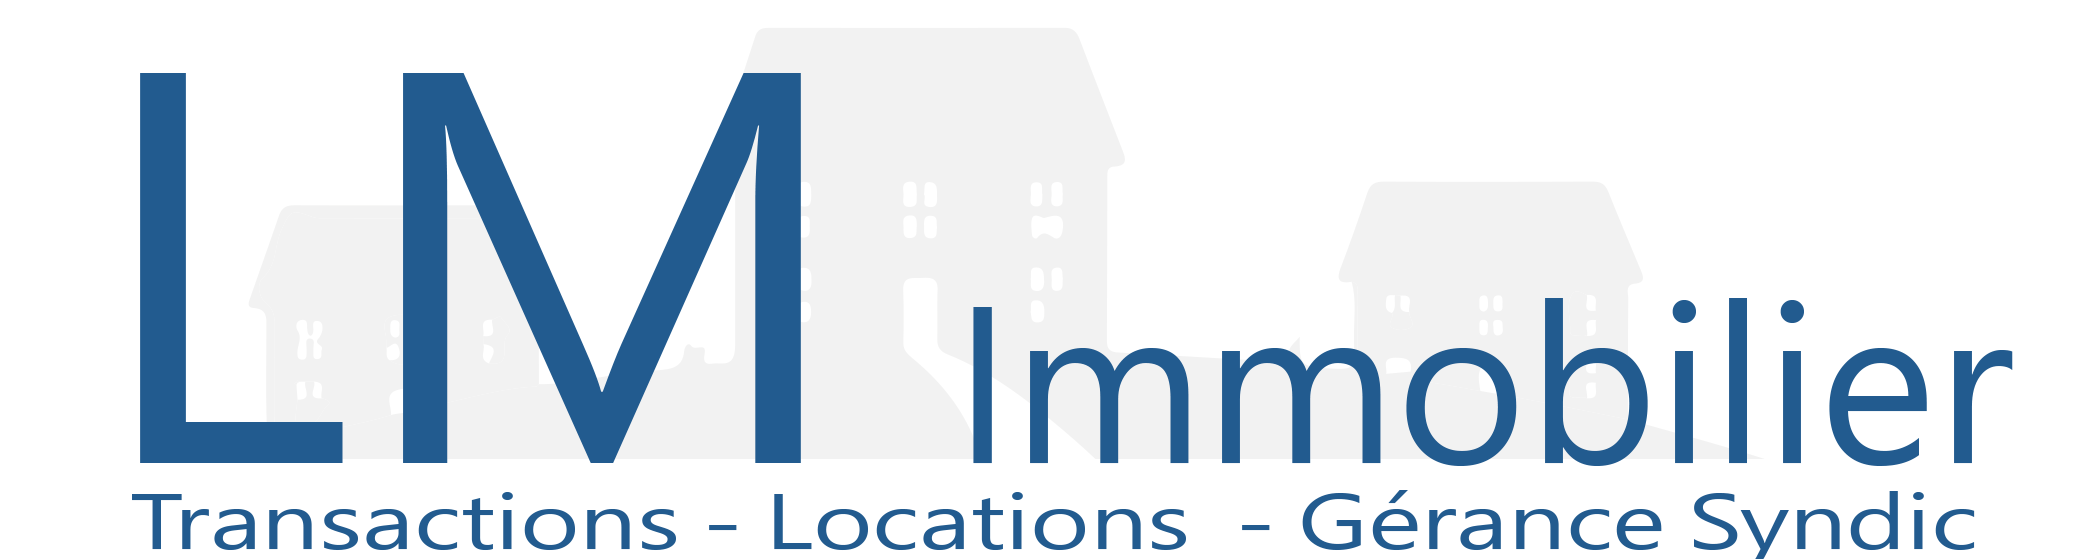 LM Immobilier Logo